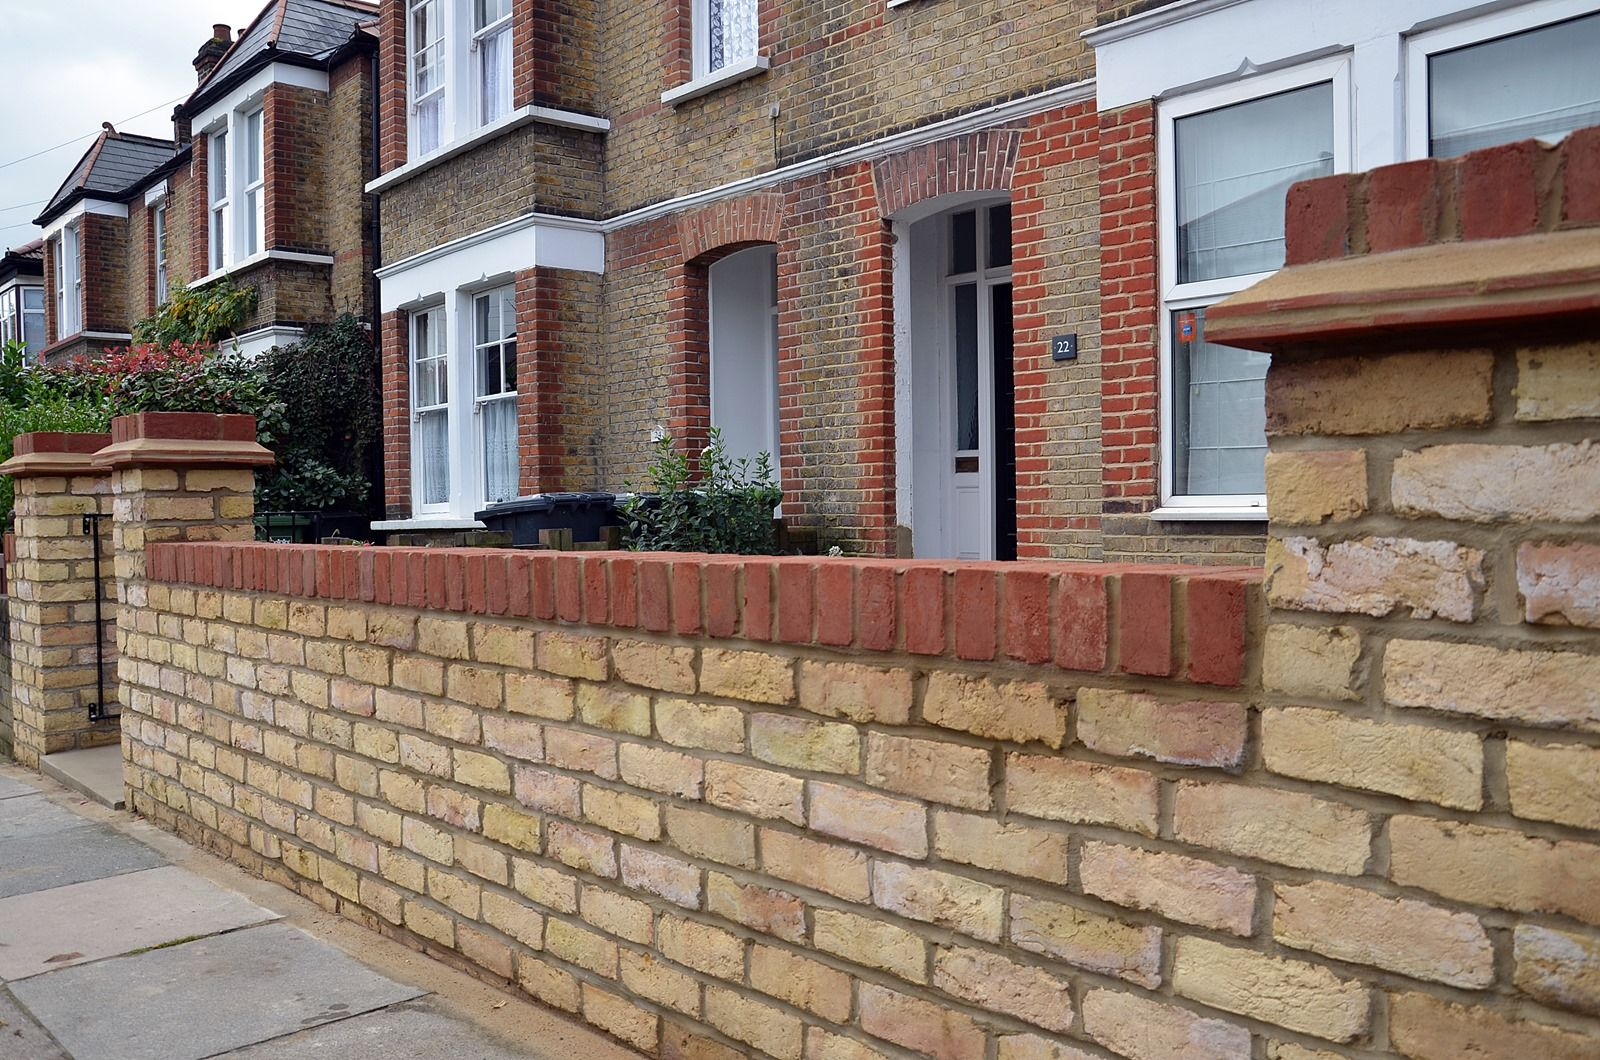 London brick work pillars for front garden wall google for Victorian garden walls designs